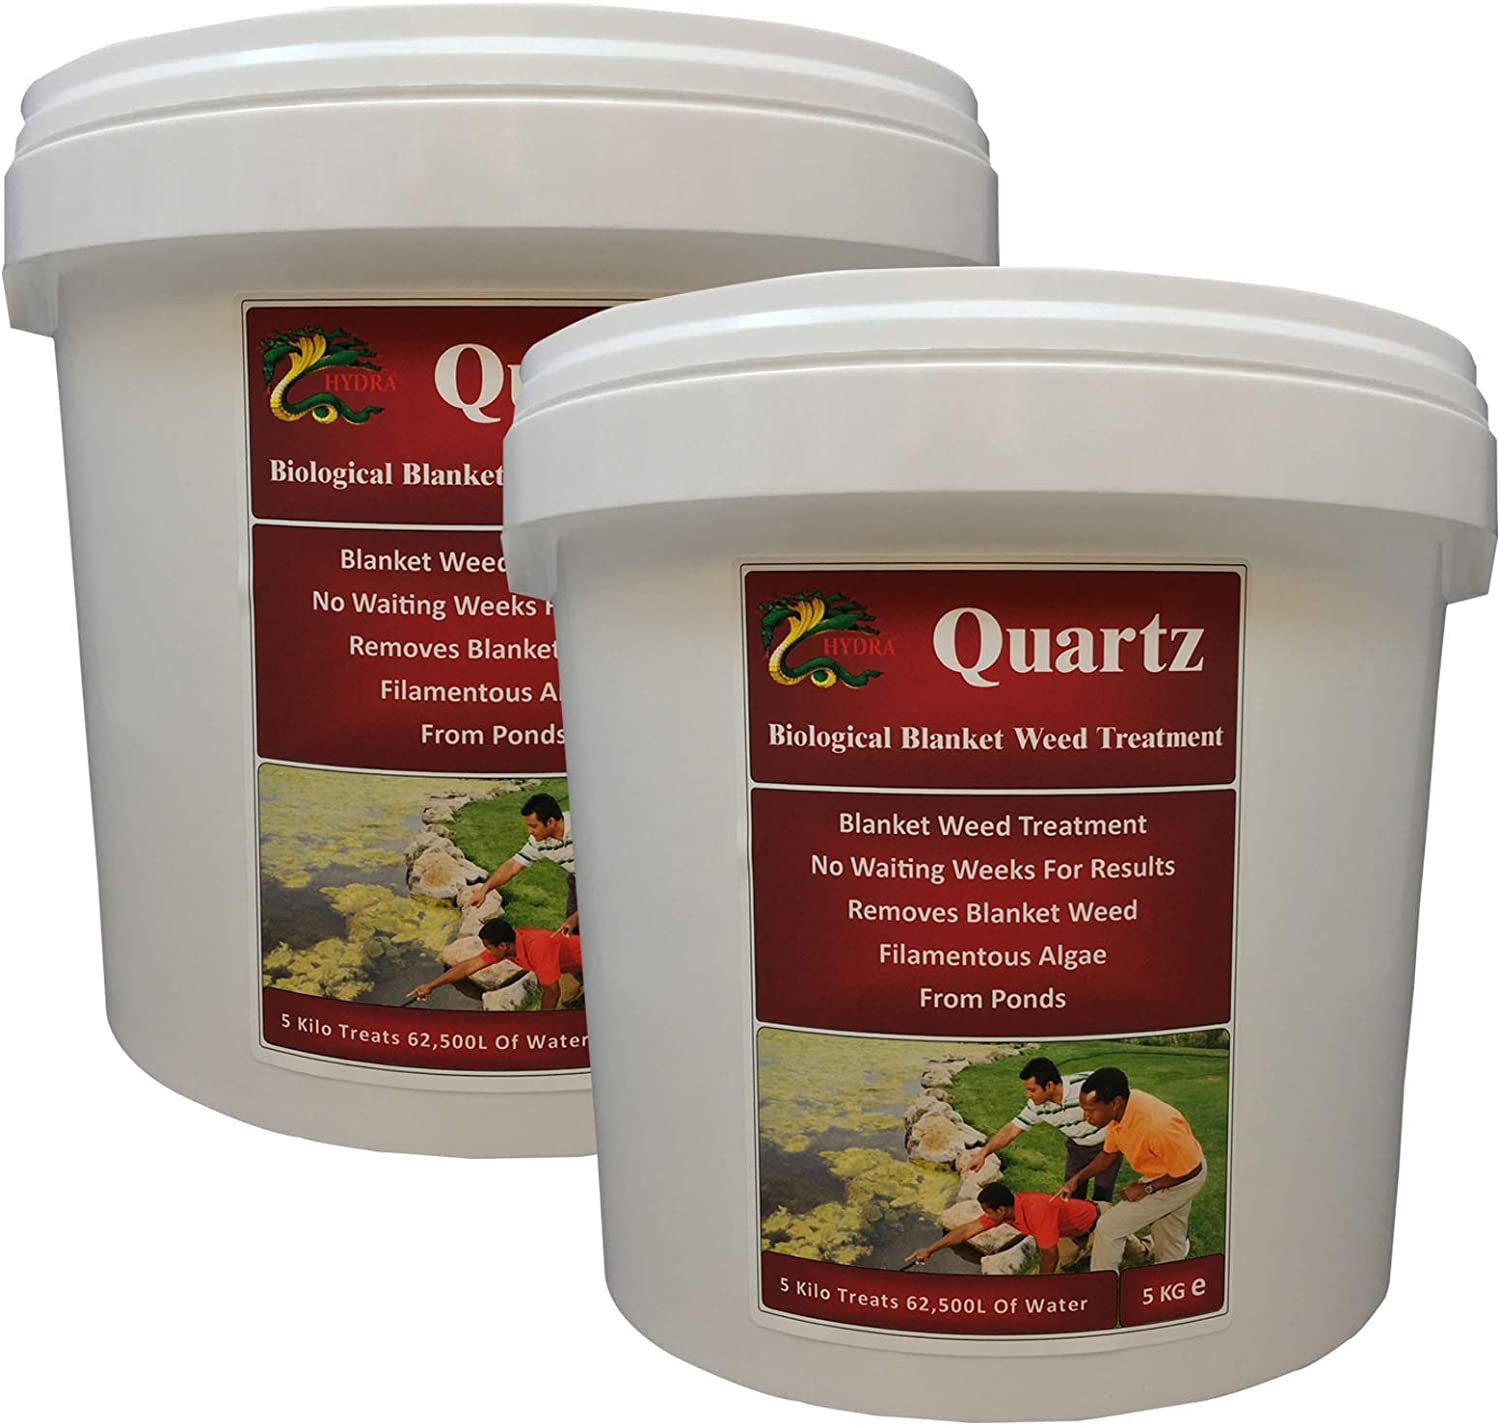 HYDRA 100% Biological Blanketweed Treatment QUARTZ 2x5Kg Treats Up To 62,500L